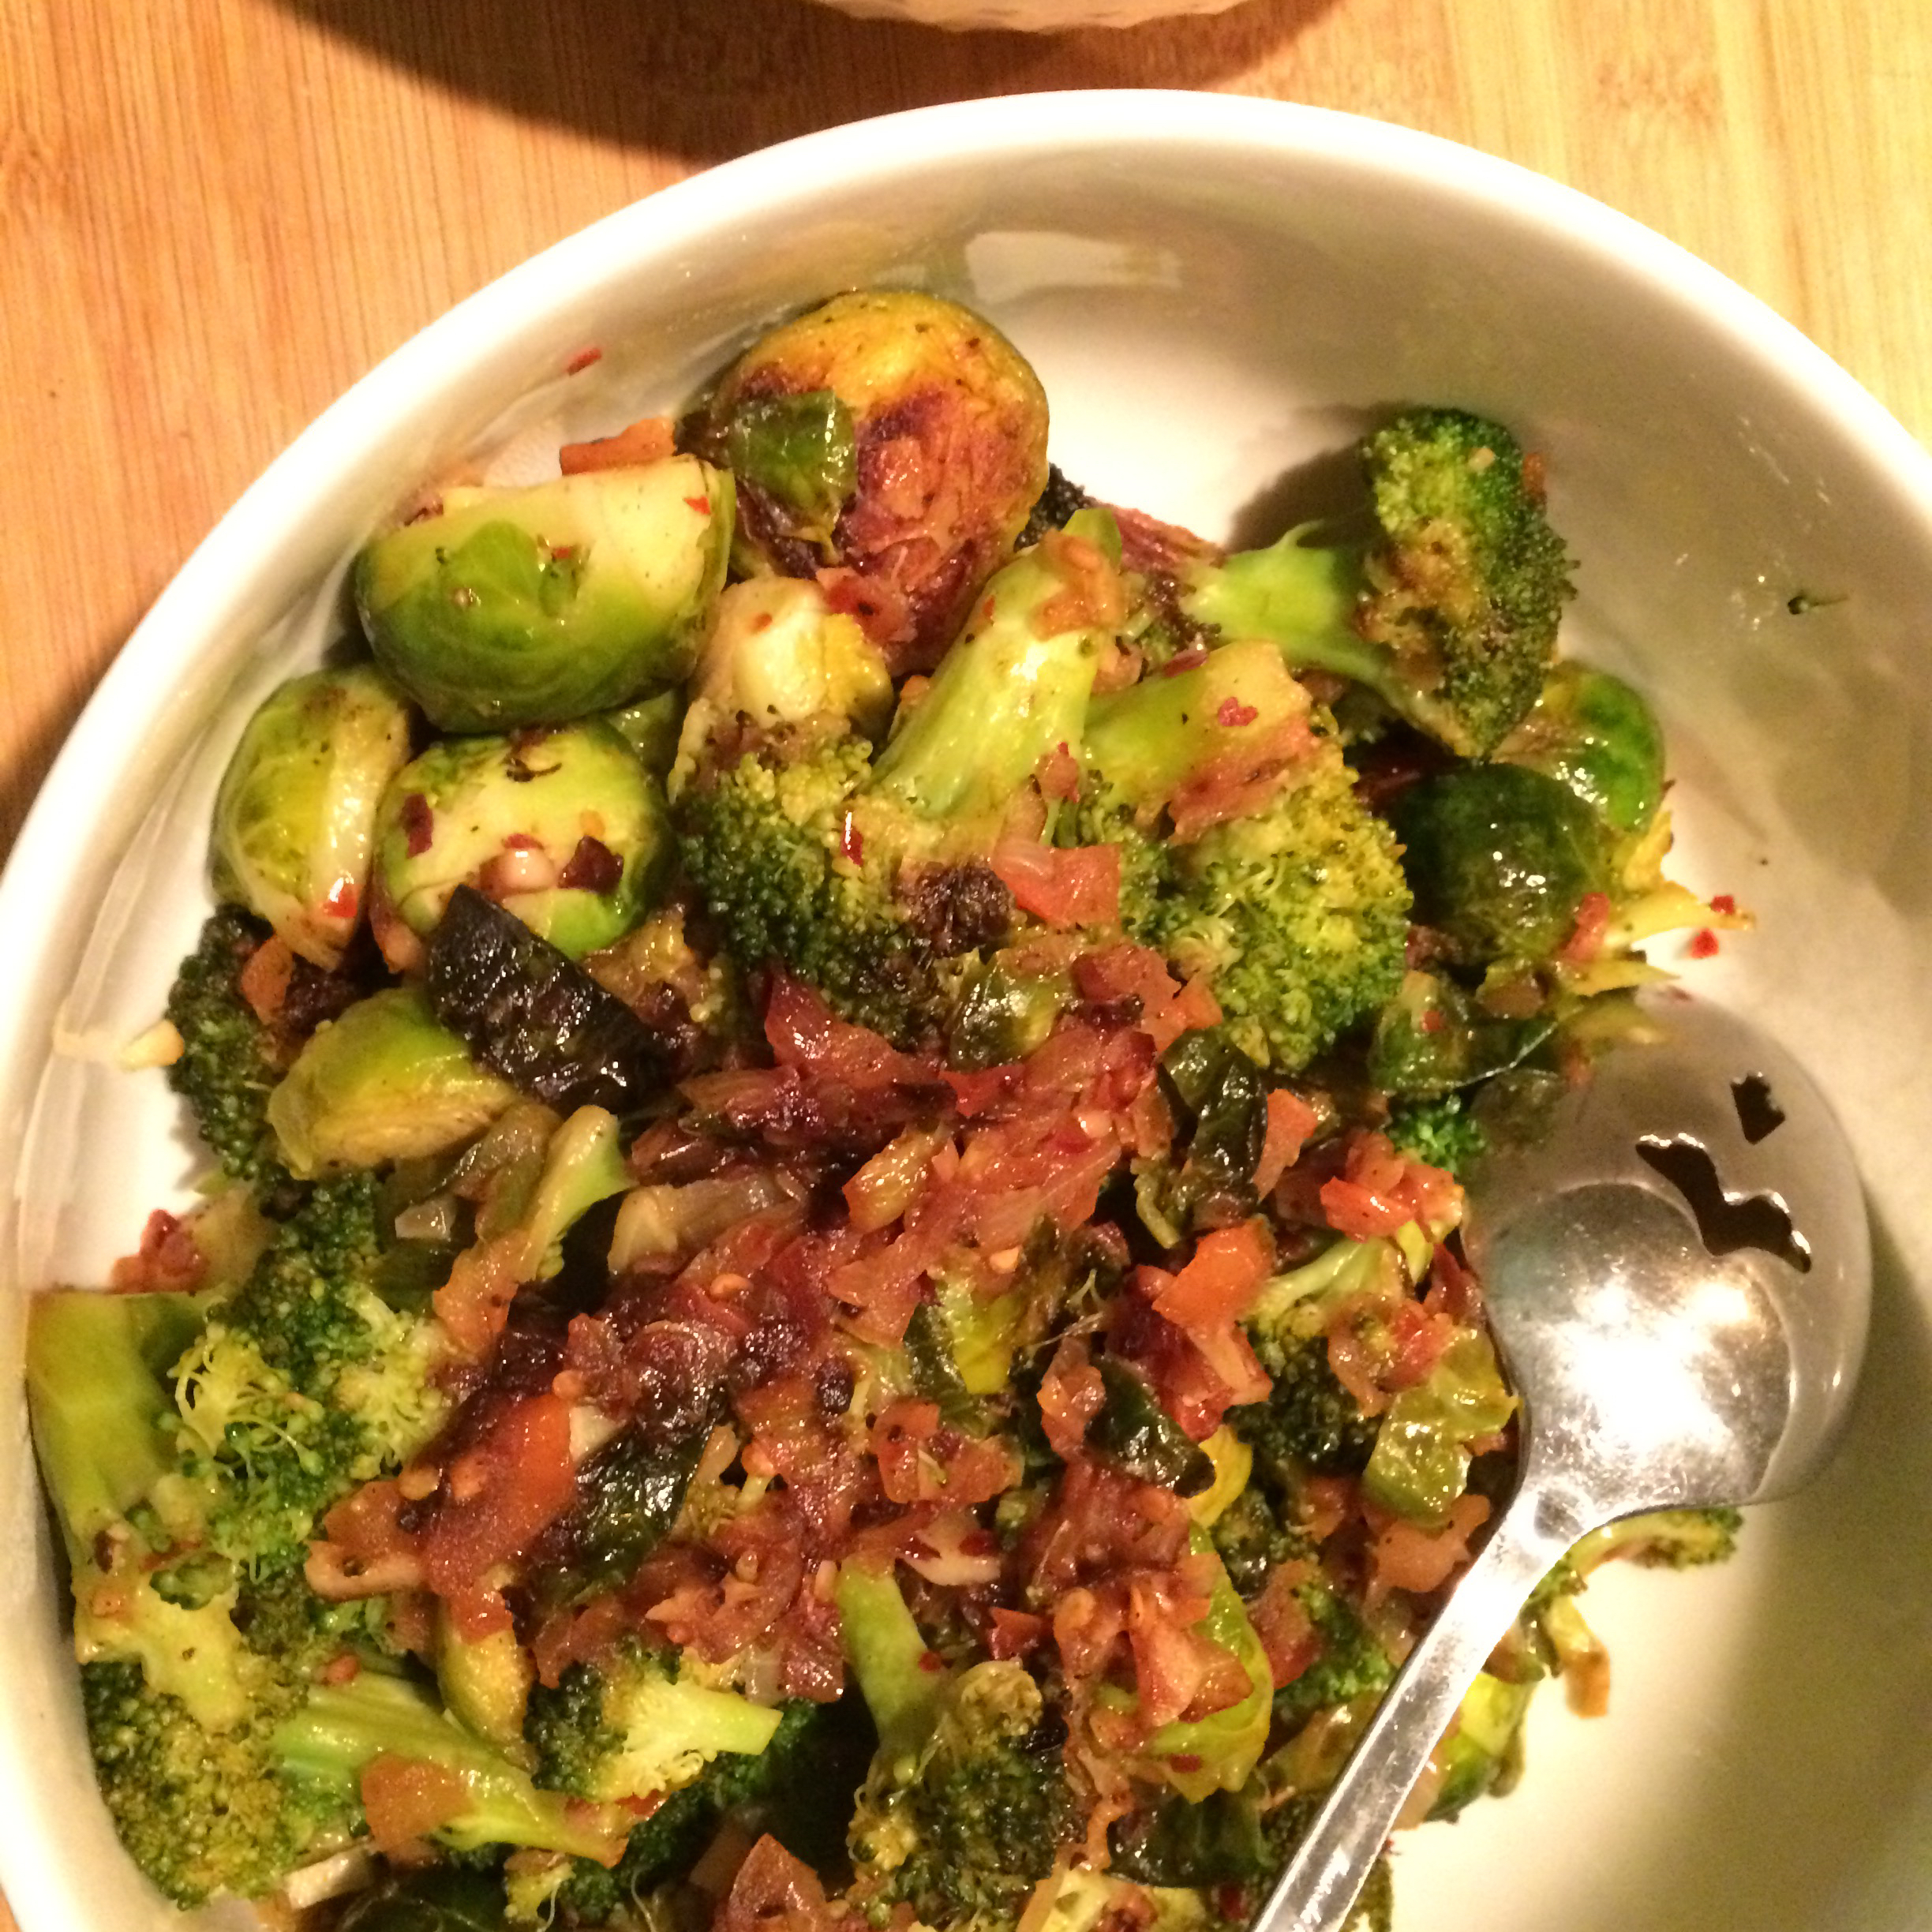 Broccoli and Brussels Sprout Delight